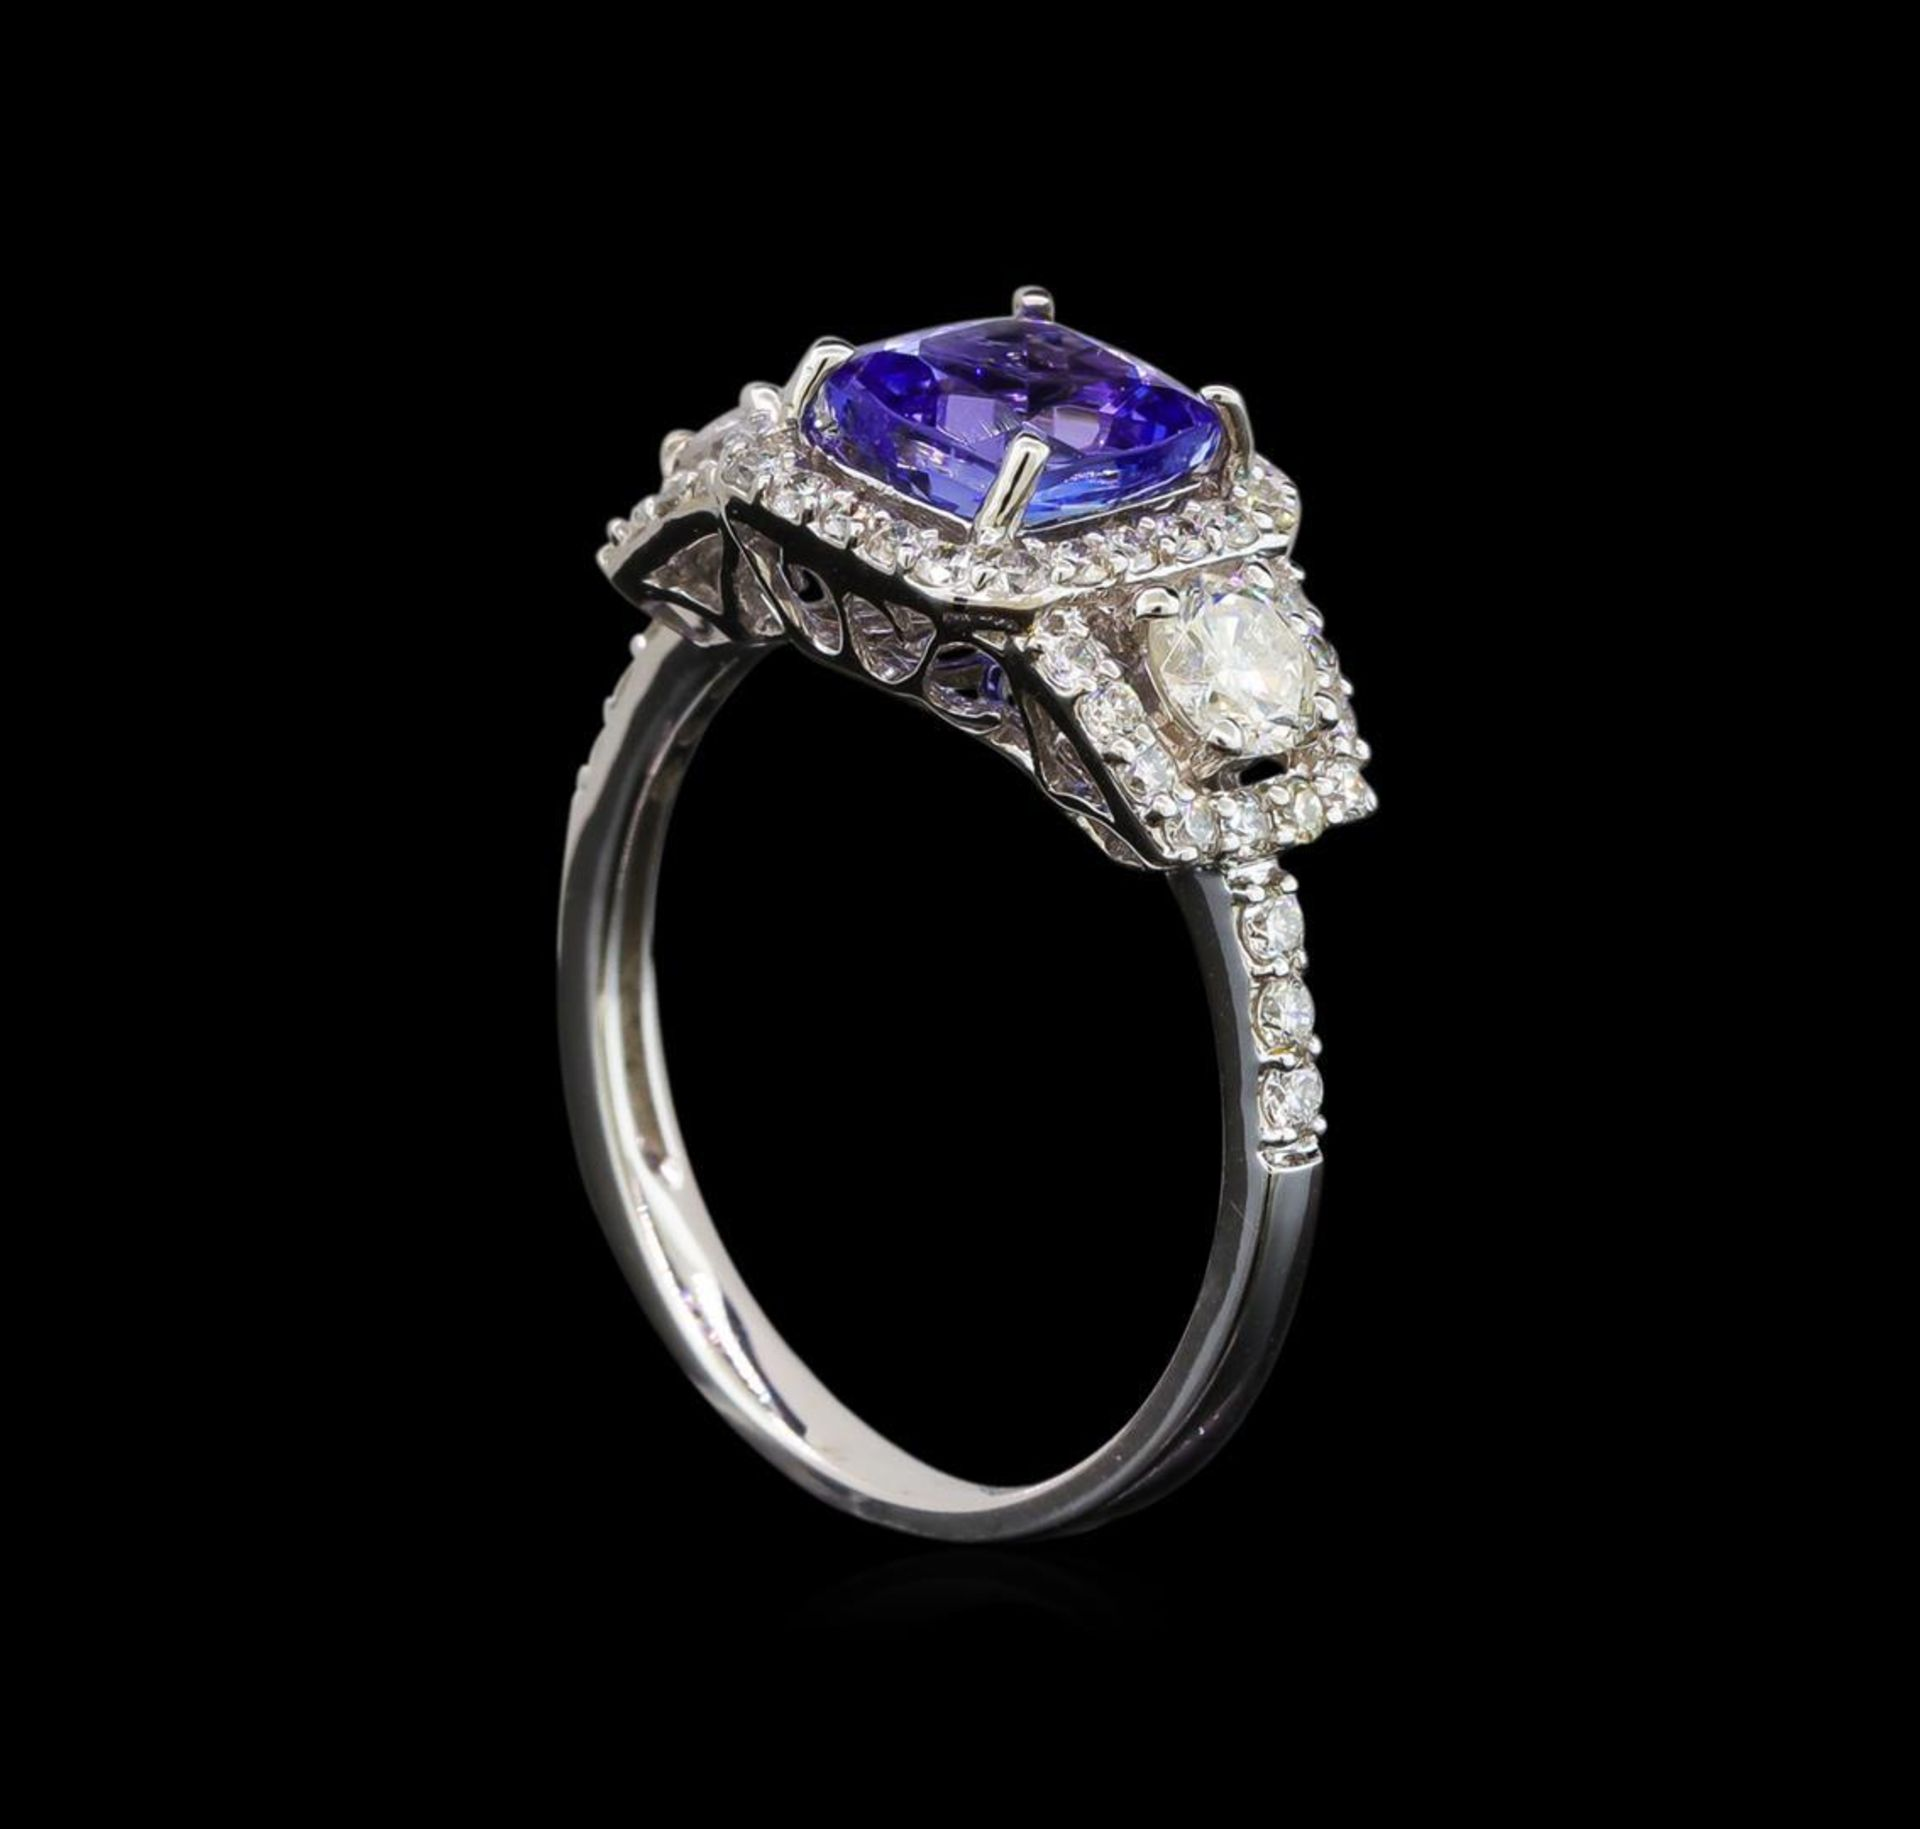 18KT White Gold 1.41 ctw Tanzanite and Diamond Ring - Image 4 of 5